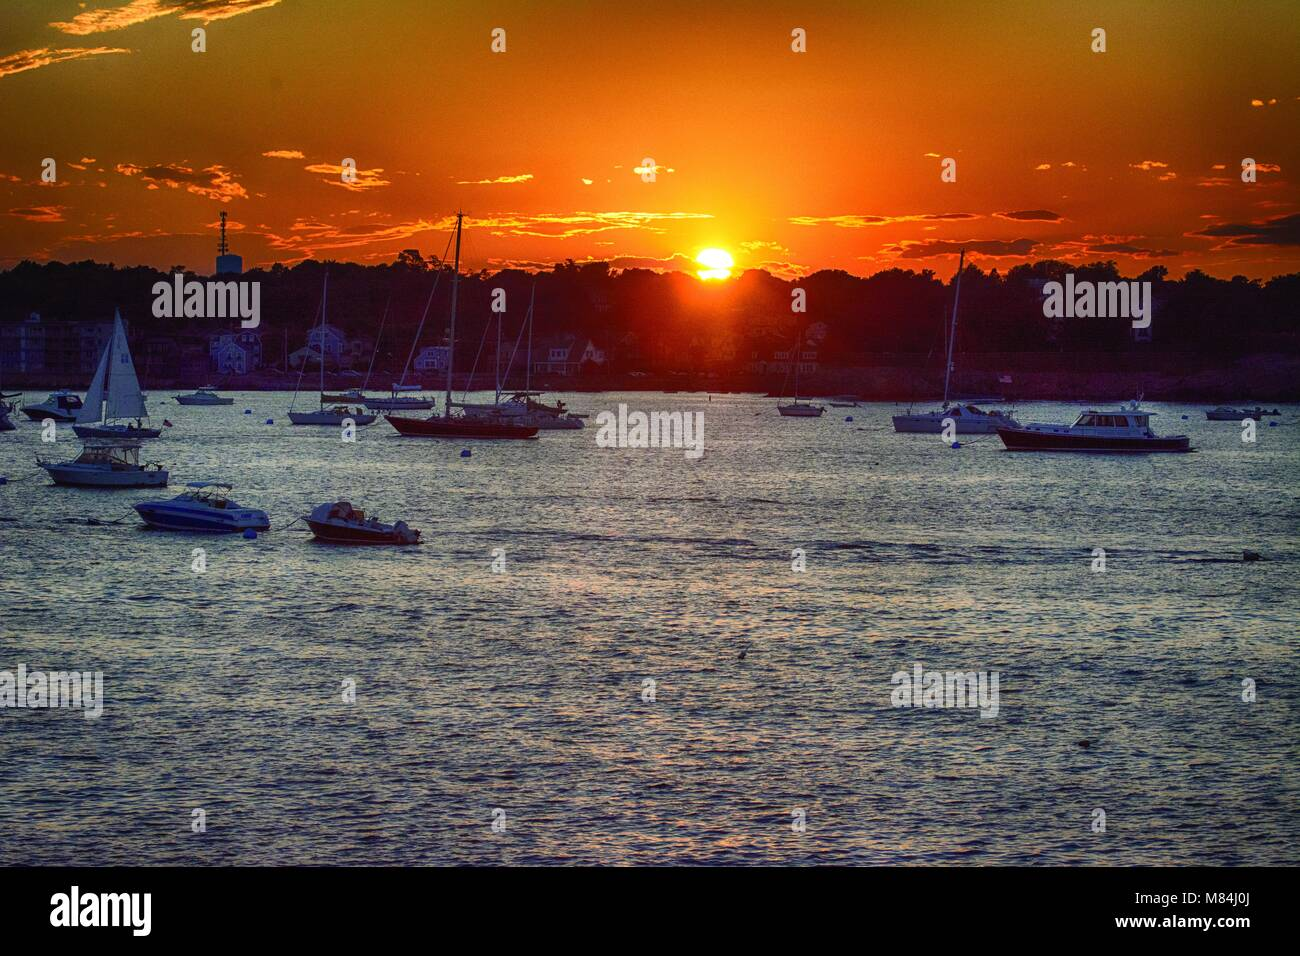 End of the day with a pretty orange sunset. - Stock Image